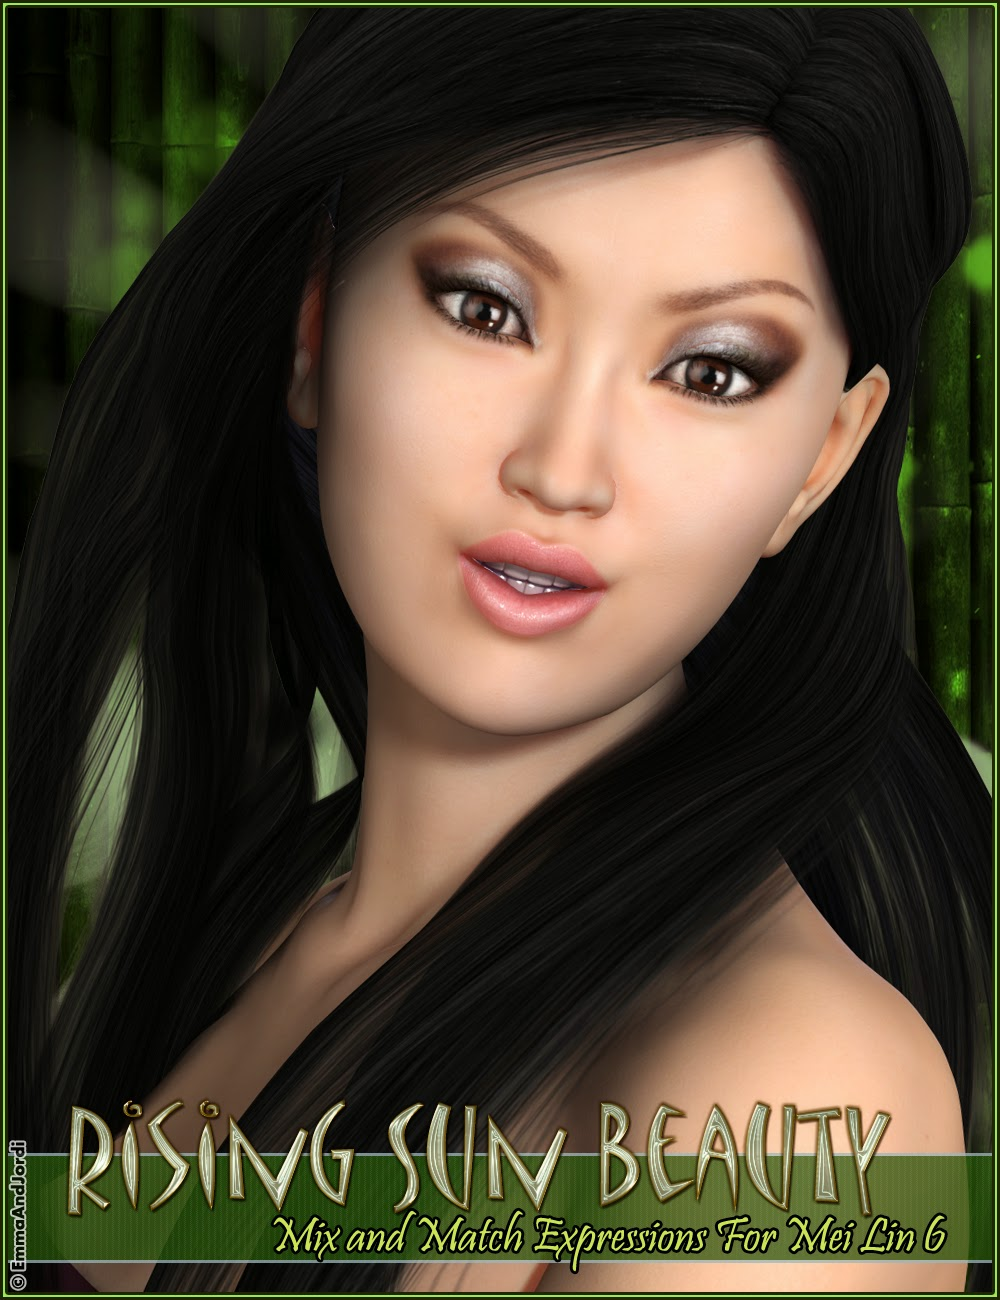 http://www.daz3d.com/rising-sun-beauty-mix-and-match-expressions-for-mei-lin-6